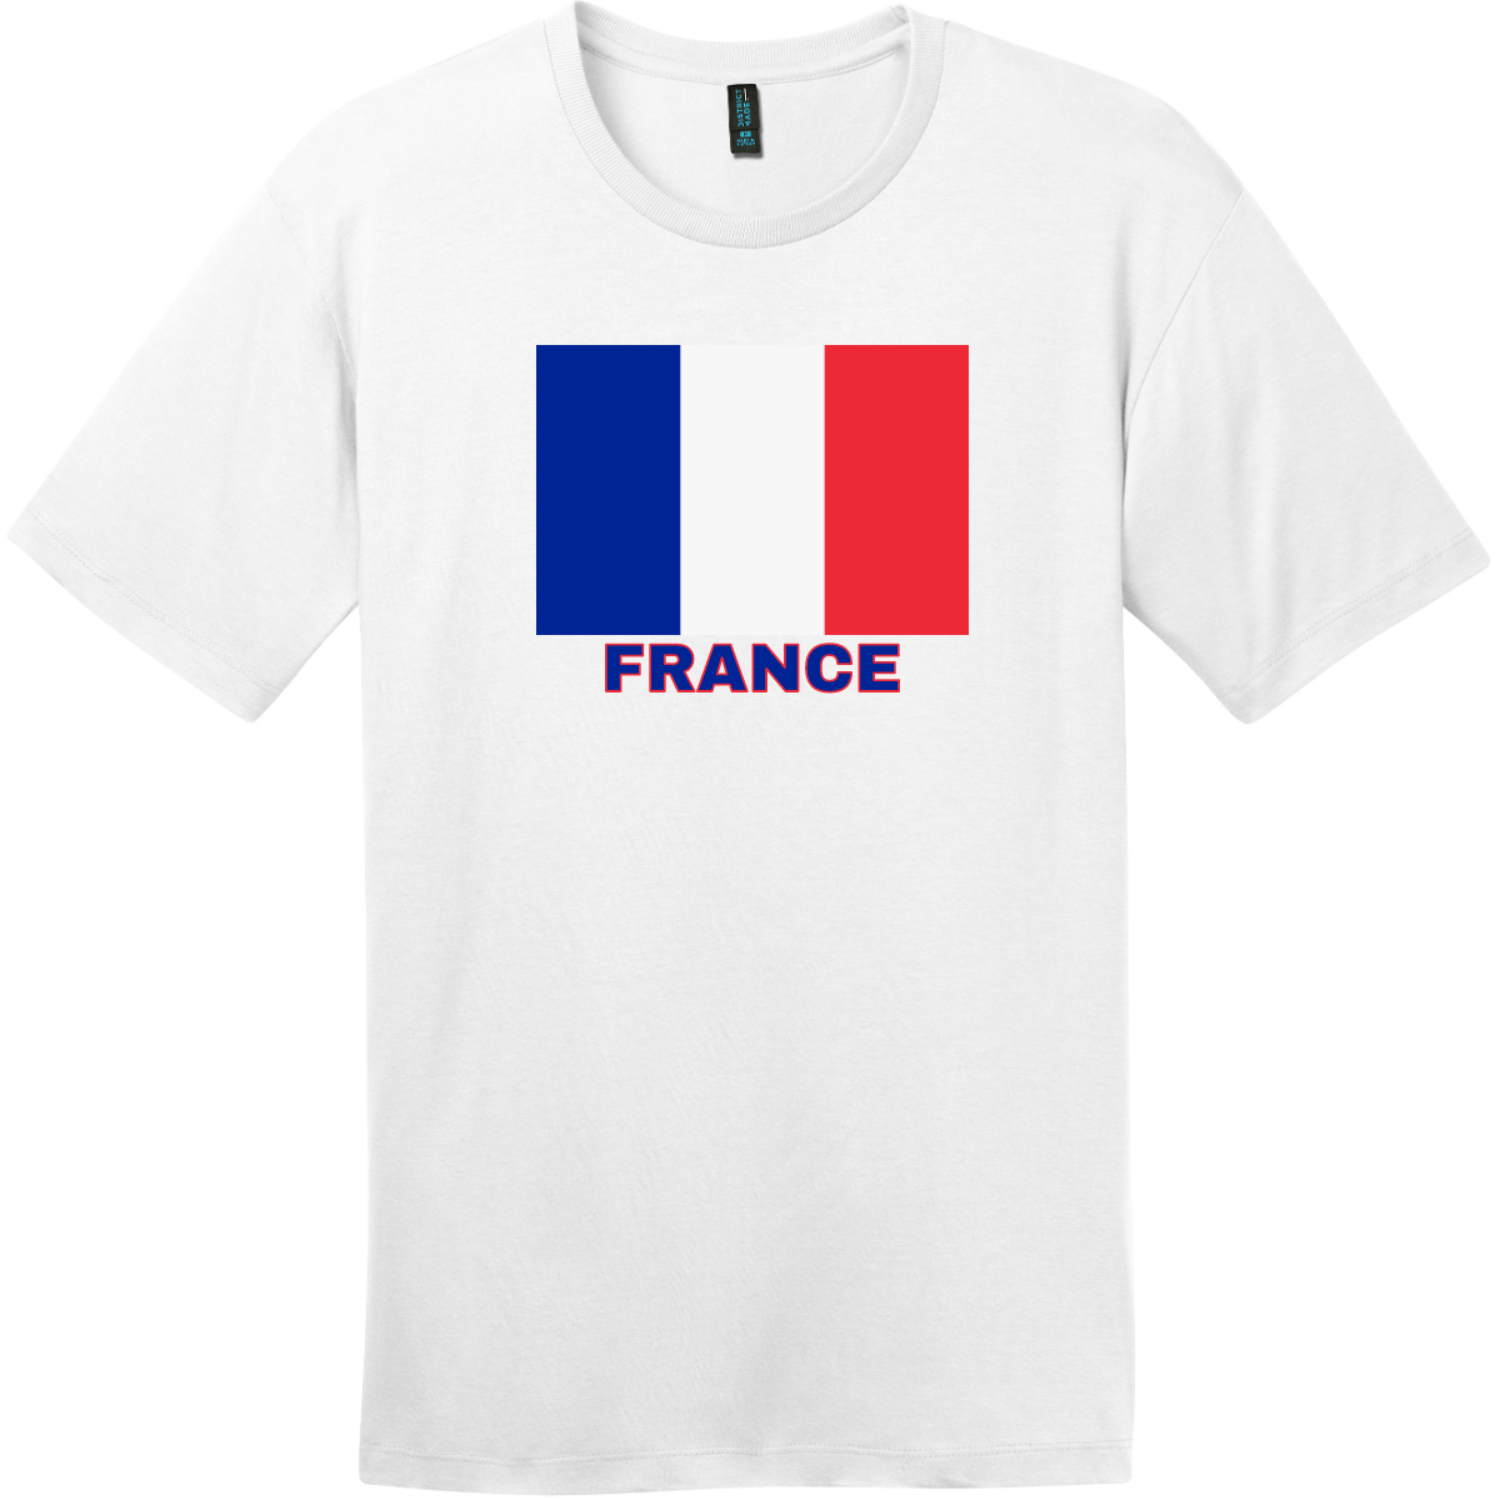 France Flag T-Shirt Bright White District Perfect Weight Tee DT104